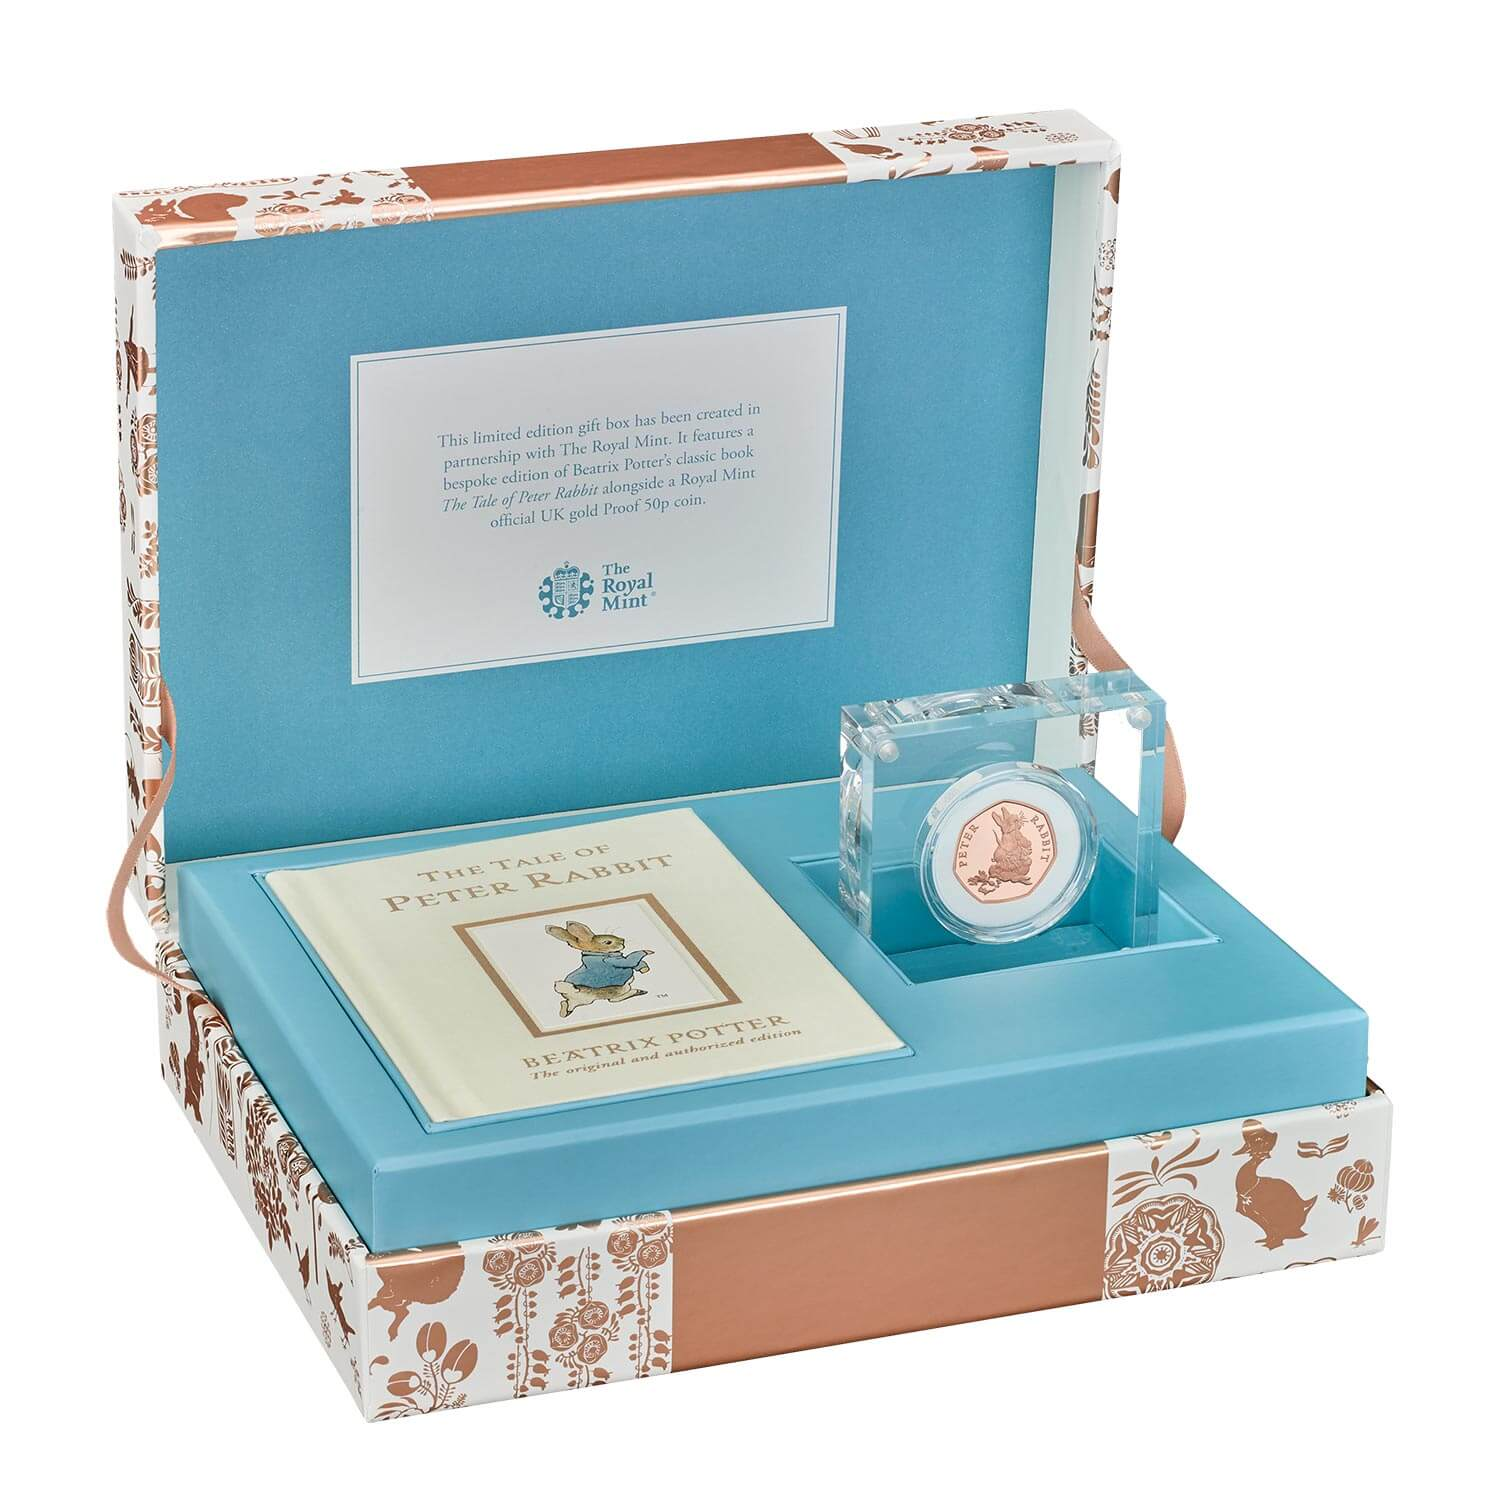 Peter Rabbit 2018 UK 50p Gold Proof Coin & Book Gift Set